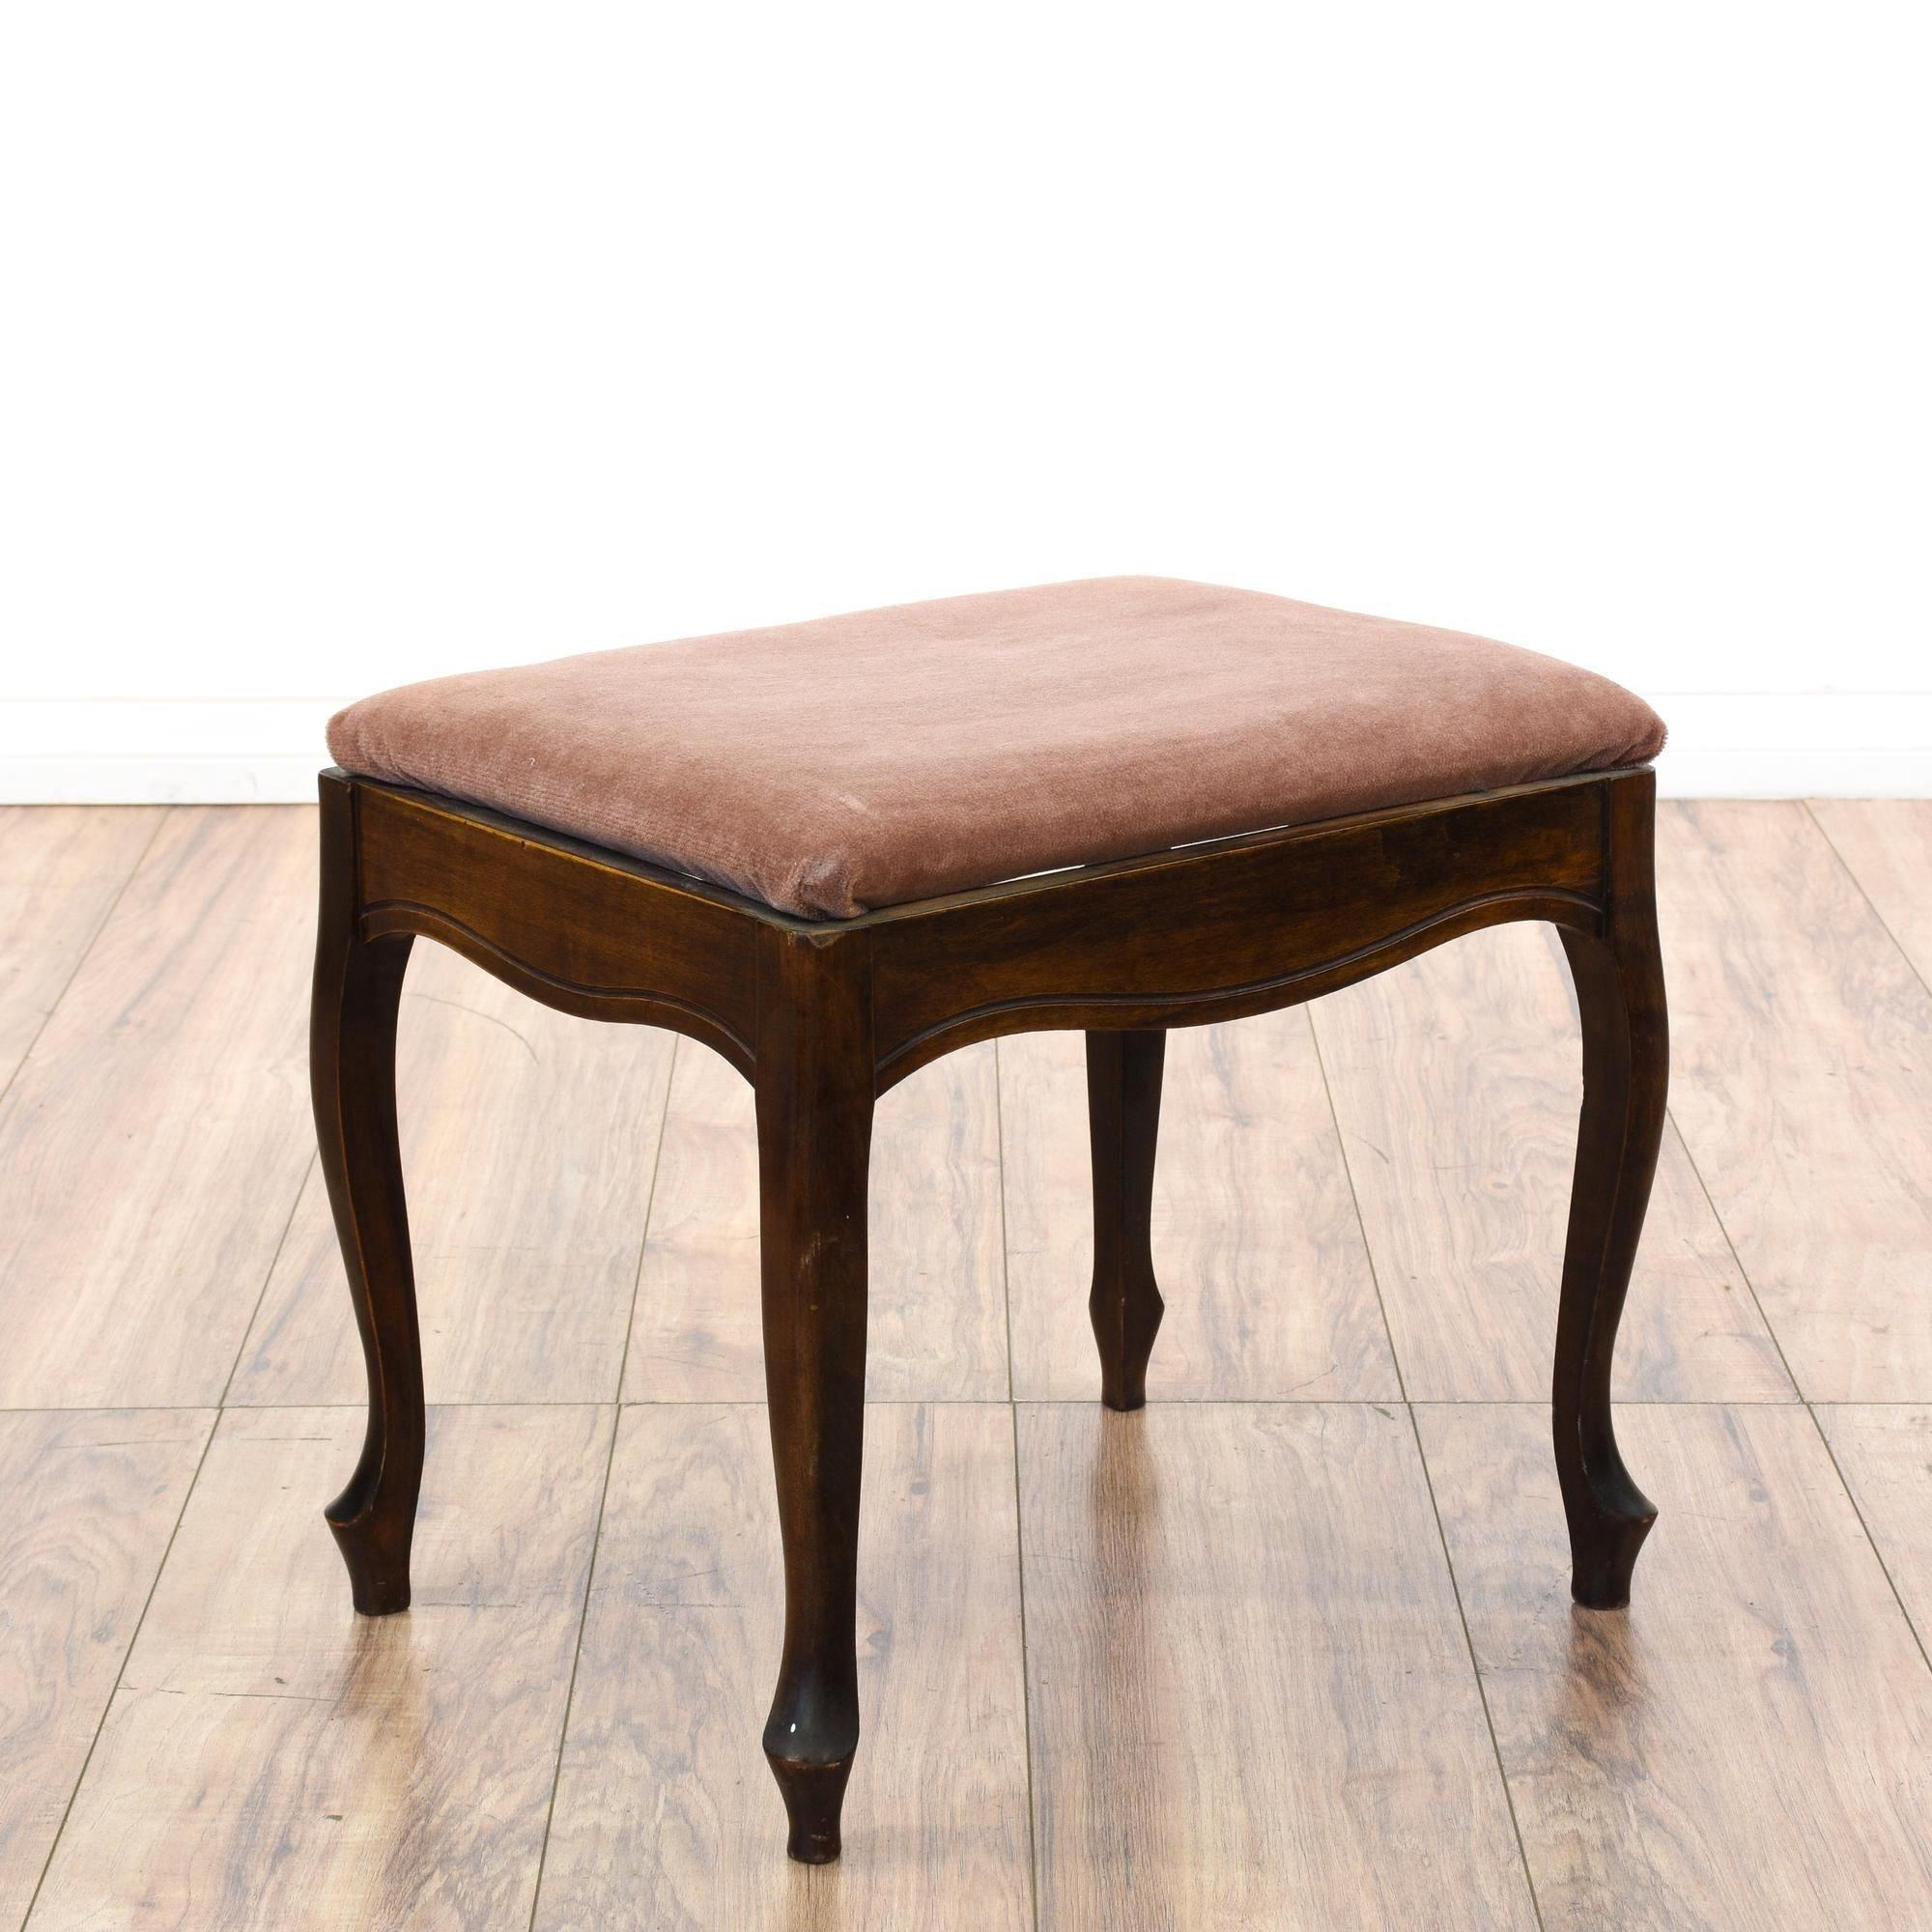 This vanity stool is featured in a solid wood with a glossy dark ...